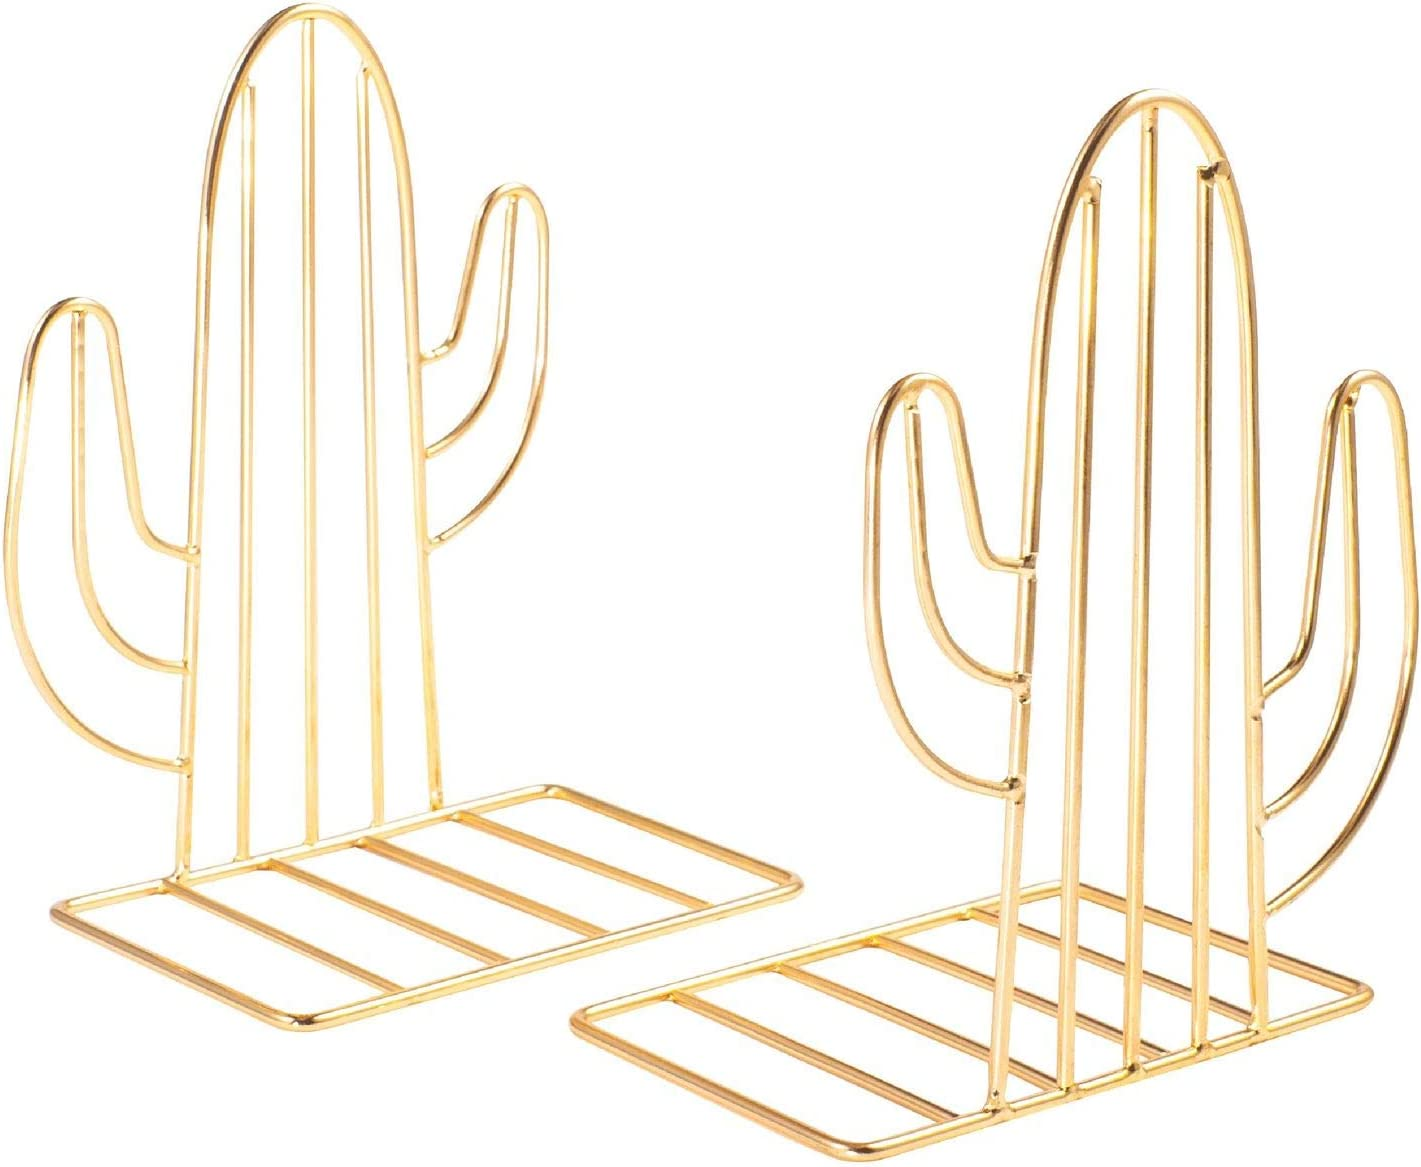 Set of 2 Zodaca Glossy Gold Metal Bookends, Decorative Book Stoppers for Shelves, Cute Cactus